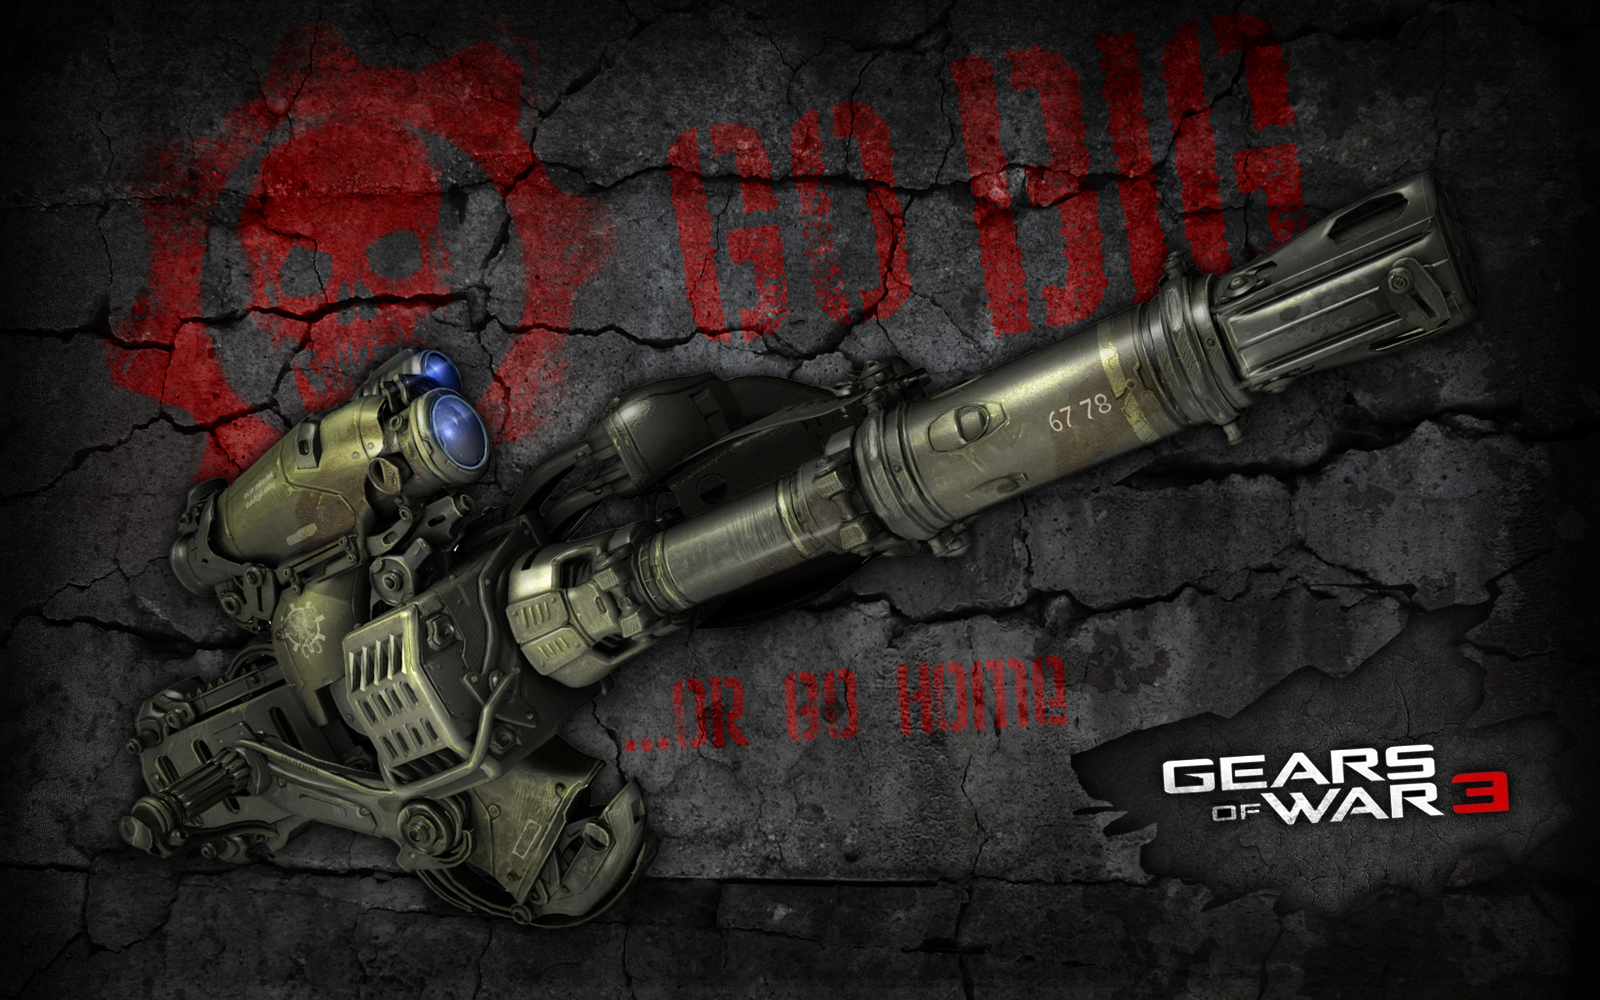 More Gears of War 3 Desktop Wallpapers 1600x1000